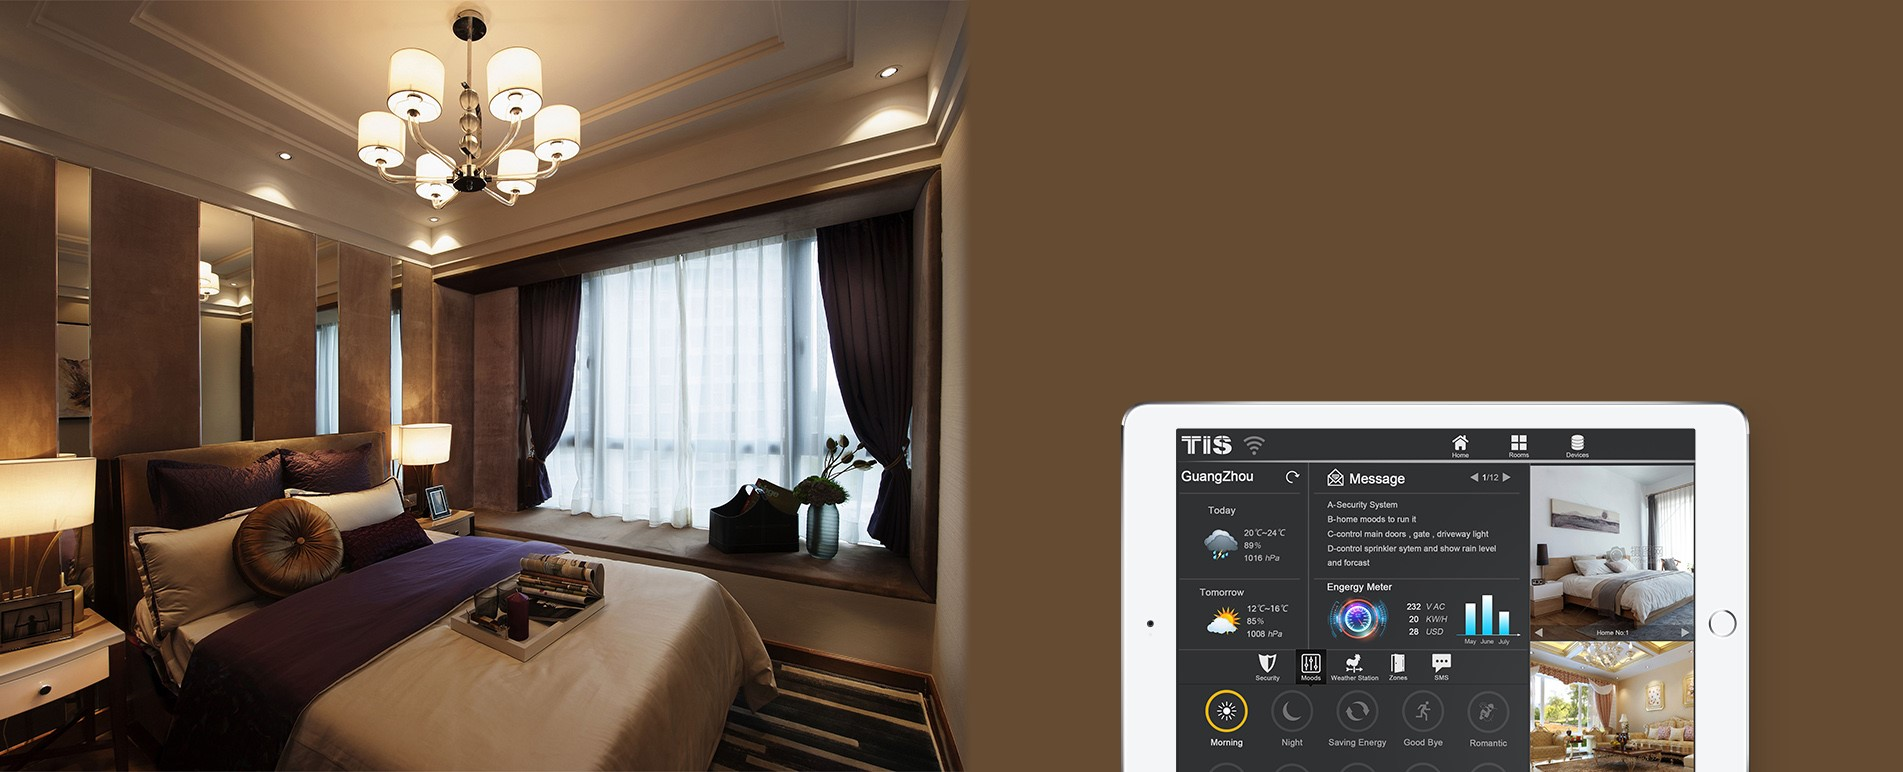 Control your smart moods by ipad, TIS home automation